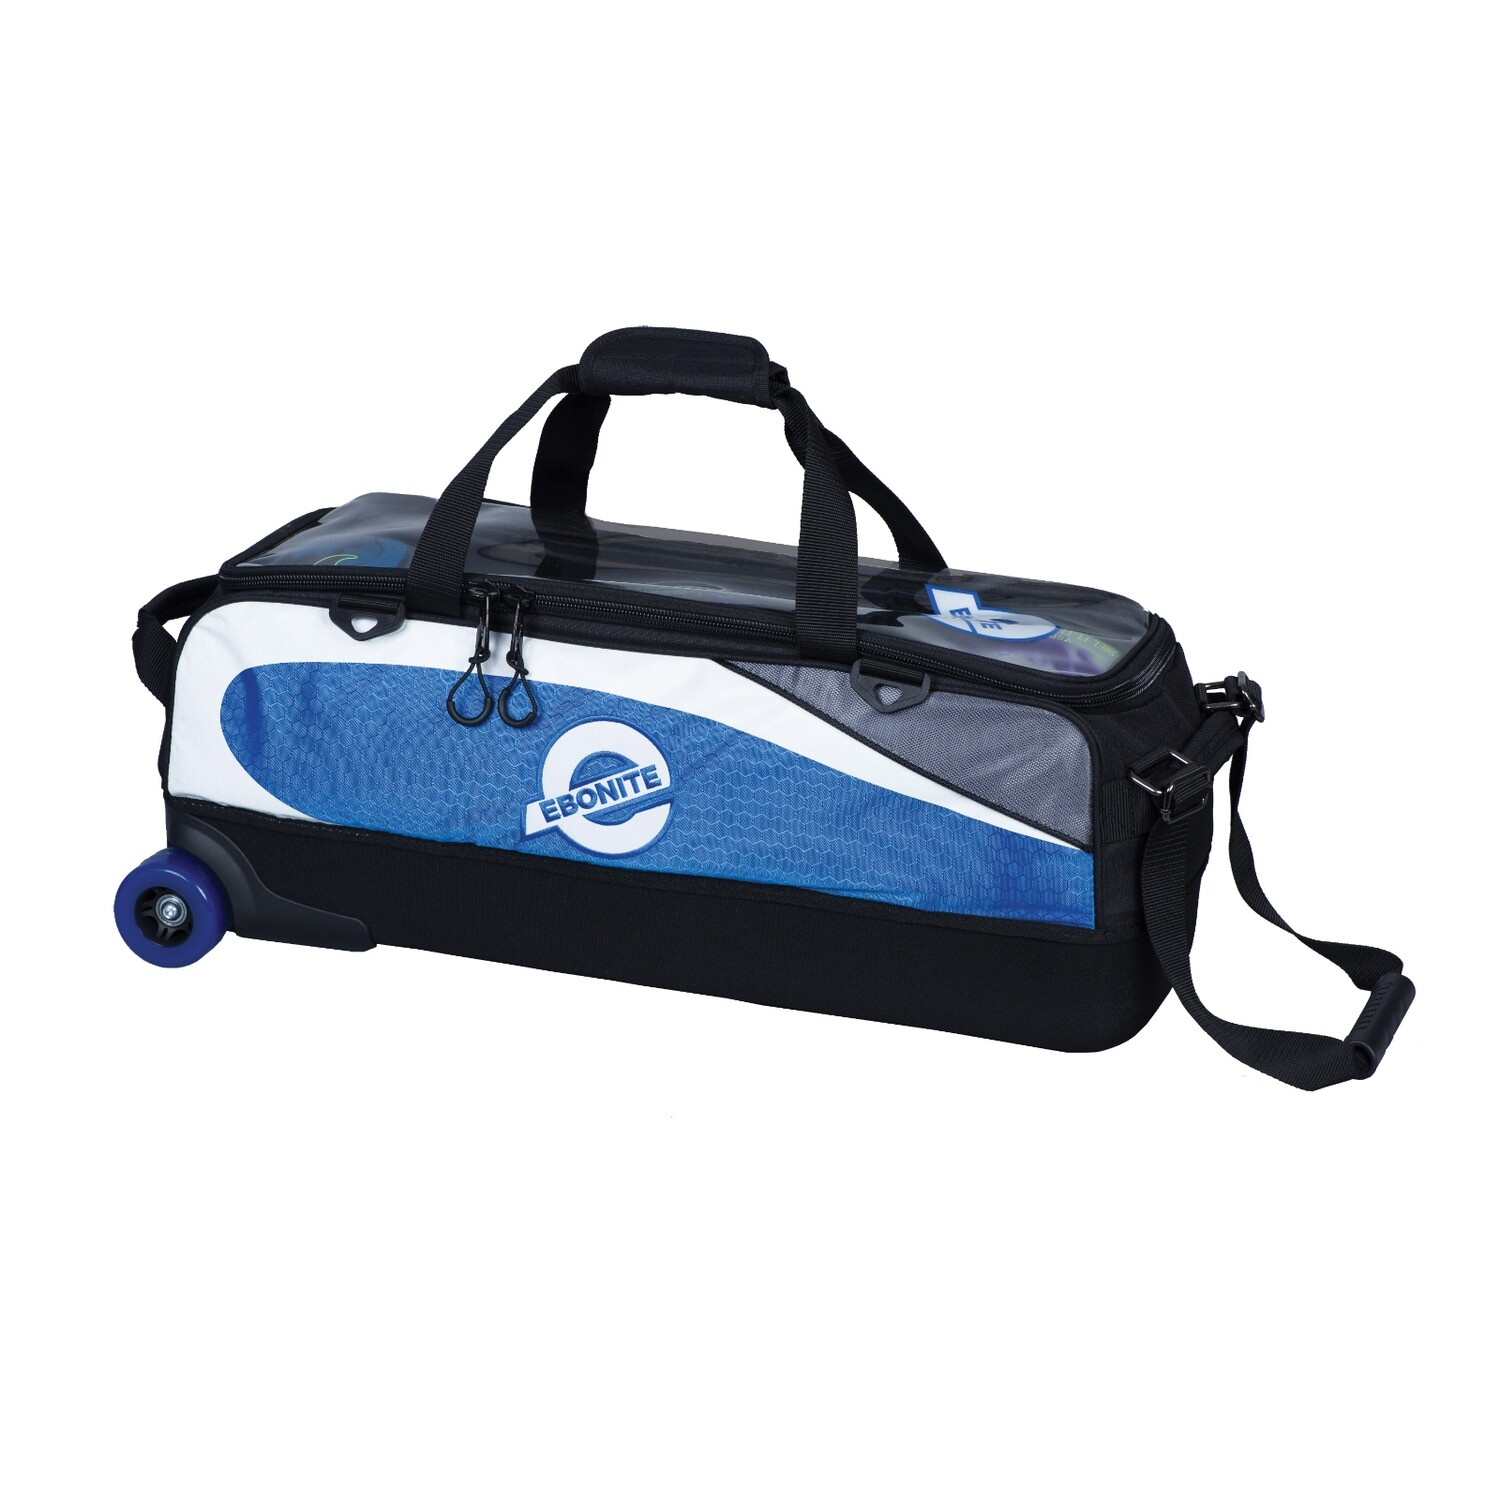 Ebonite Players Blue/White Slim Triple 3 Ball Tote Bowling Bag